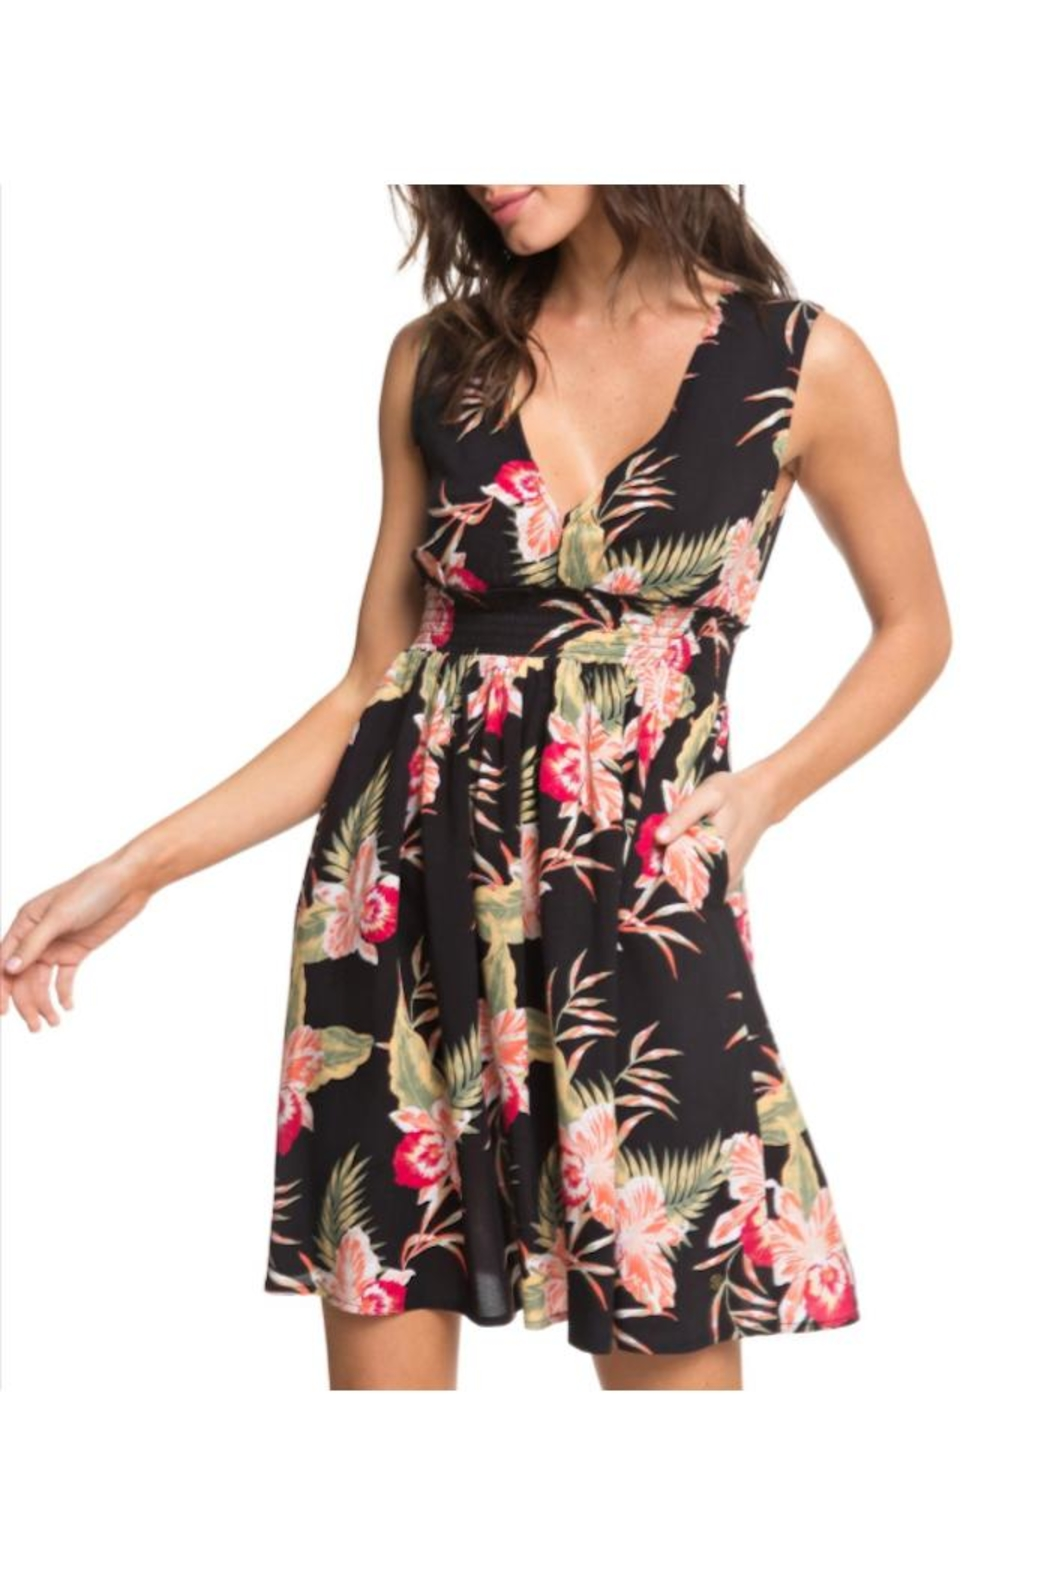 Roxy Floral Keyhole Dress - Main Image